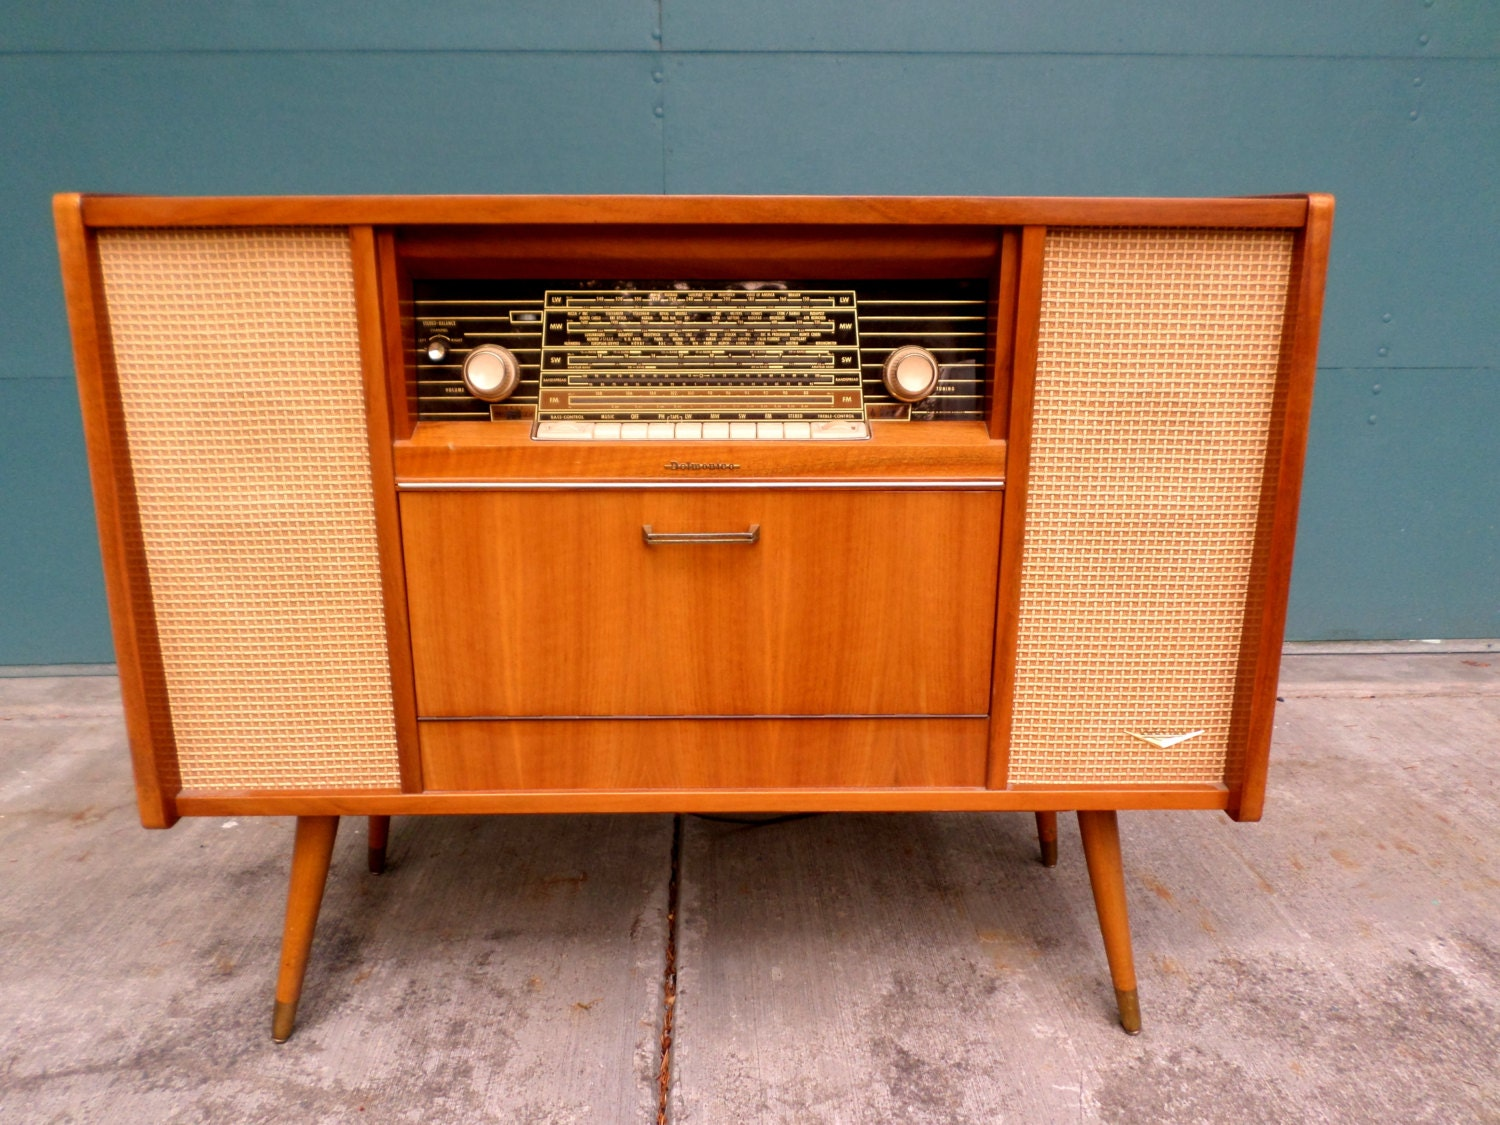 Vintage Mid Century Modern Console Stereo Korting Delmonico Model 941 W Telefunken Turntablelong Short Wave Radiofm Working Condition on telefunken console radio